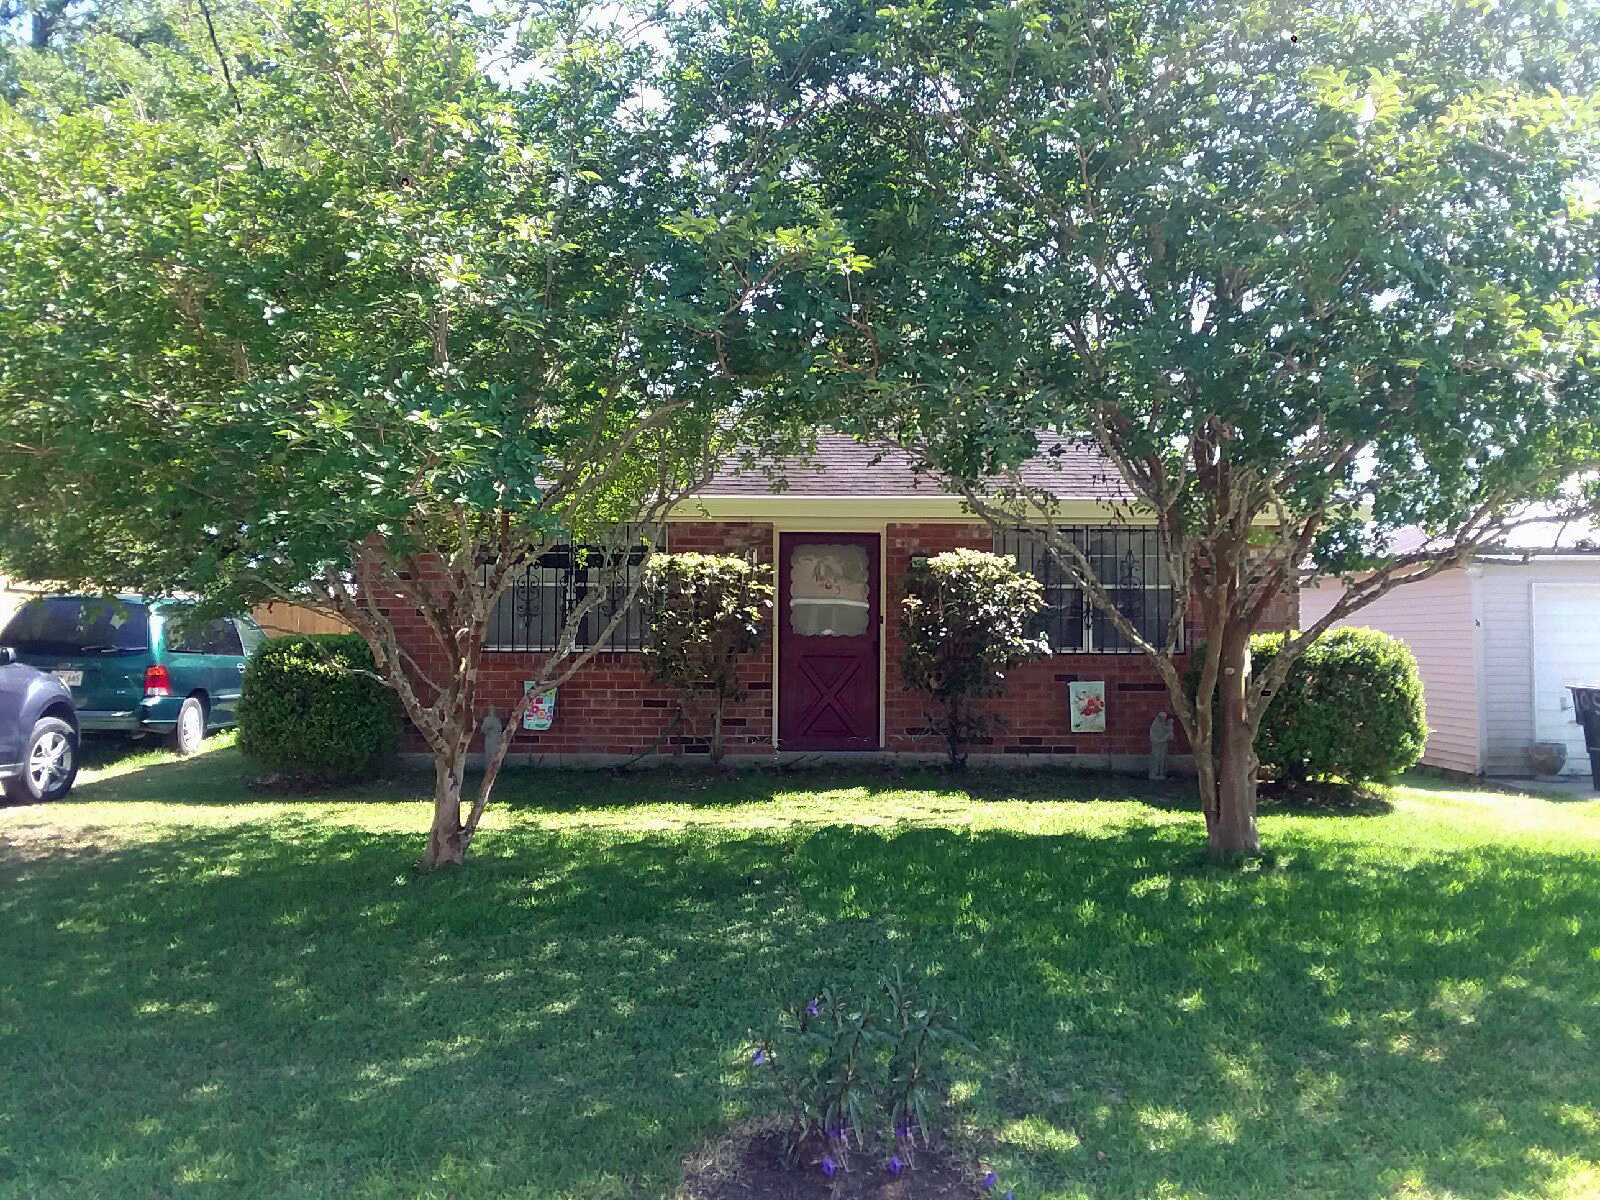 Single Family Home for Sale at 103 E Cuevas Street, Belle Chasse 103 E Cuevas St Belle Chasse, Louisiana 70037 United States